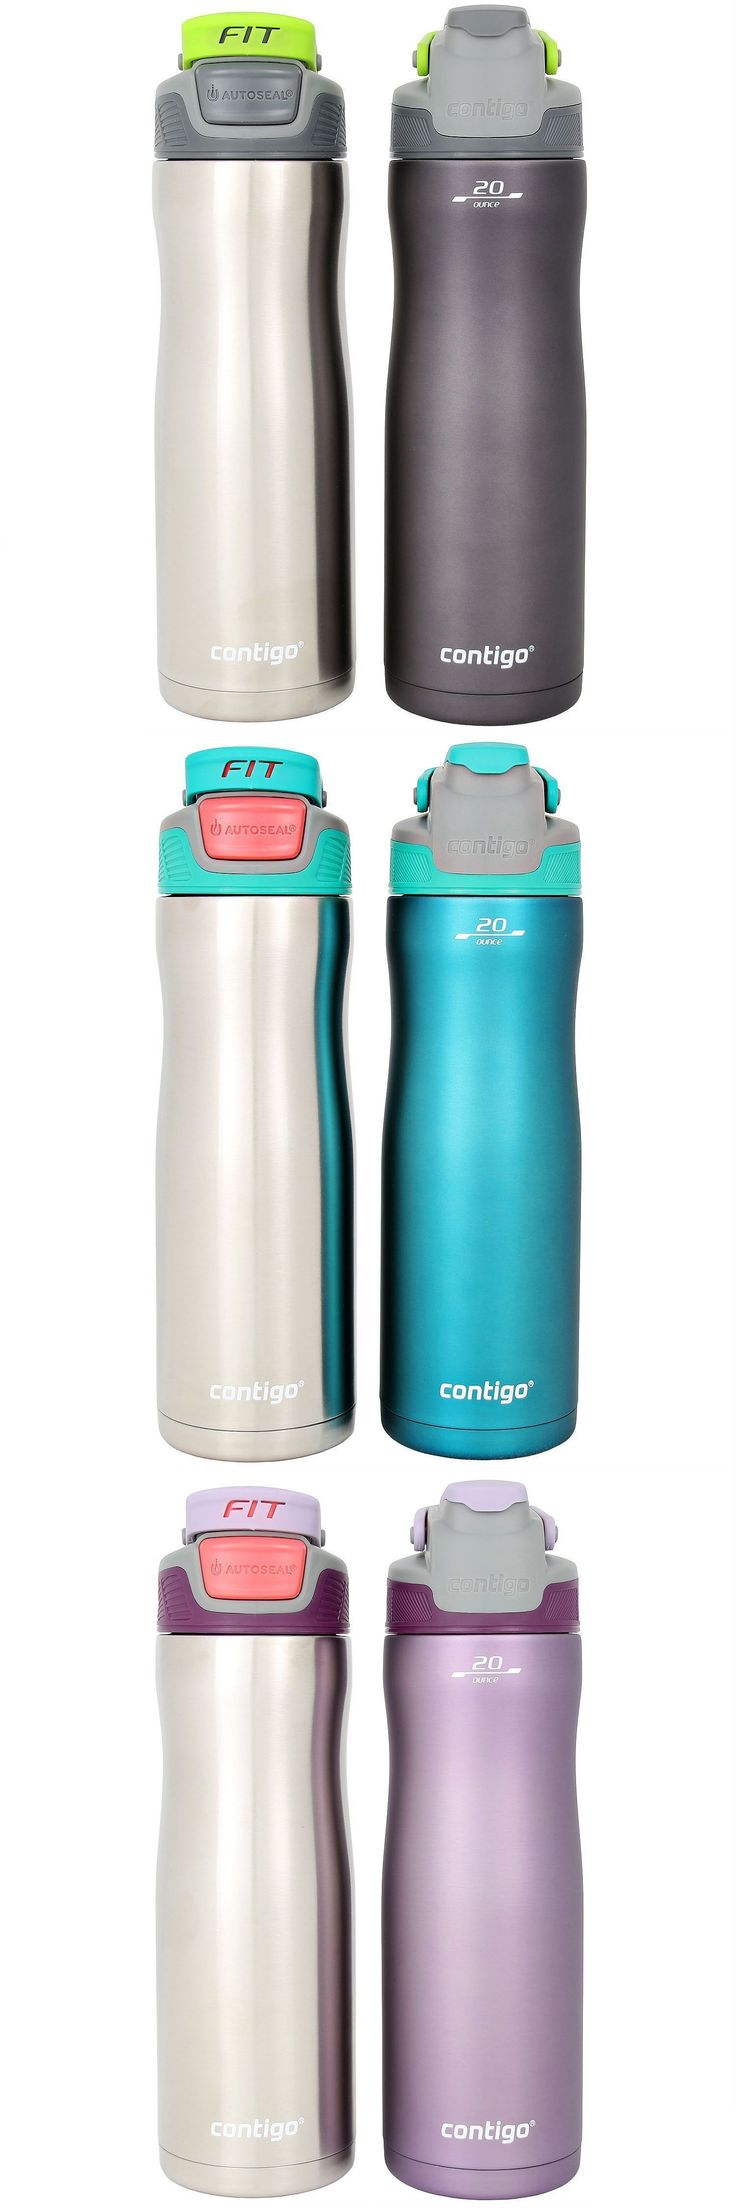 Drink Containers and Thermoses 177006: Contigo Autoseal Fit Trainer Stainless Steel Water Bottle 20-Ounce Oz Two Pack 2 -> BUY IT NOW ONLY: $30.5 on eBay!